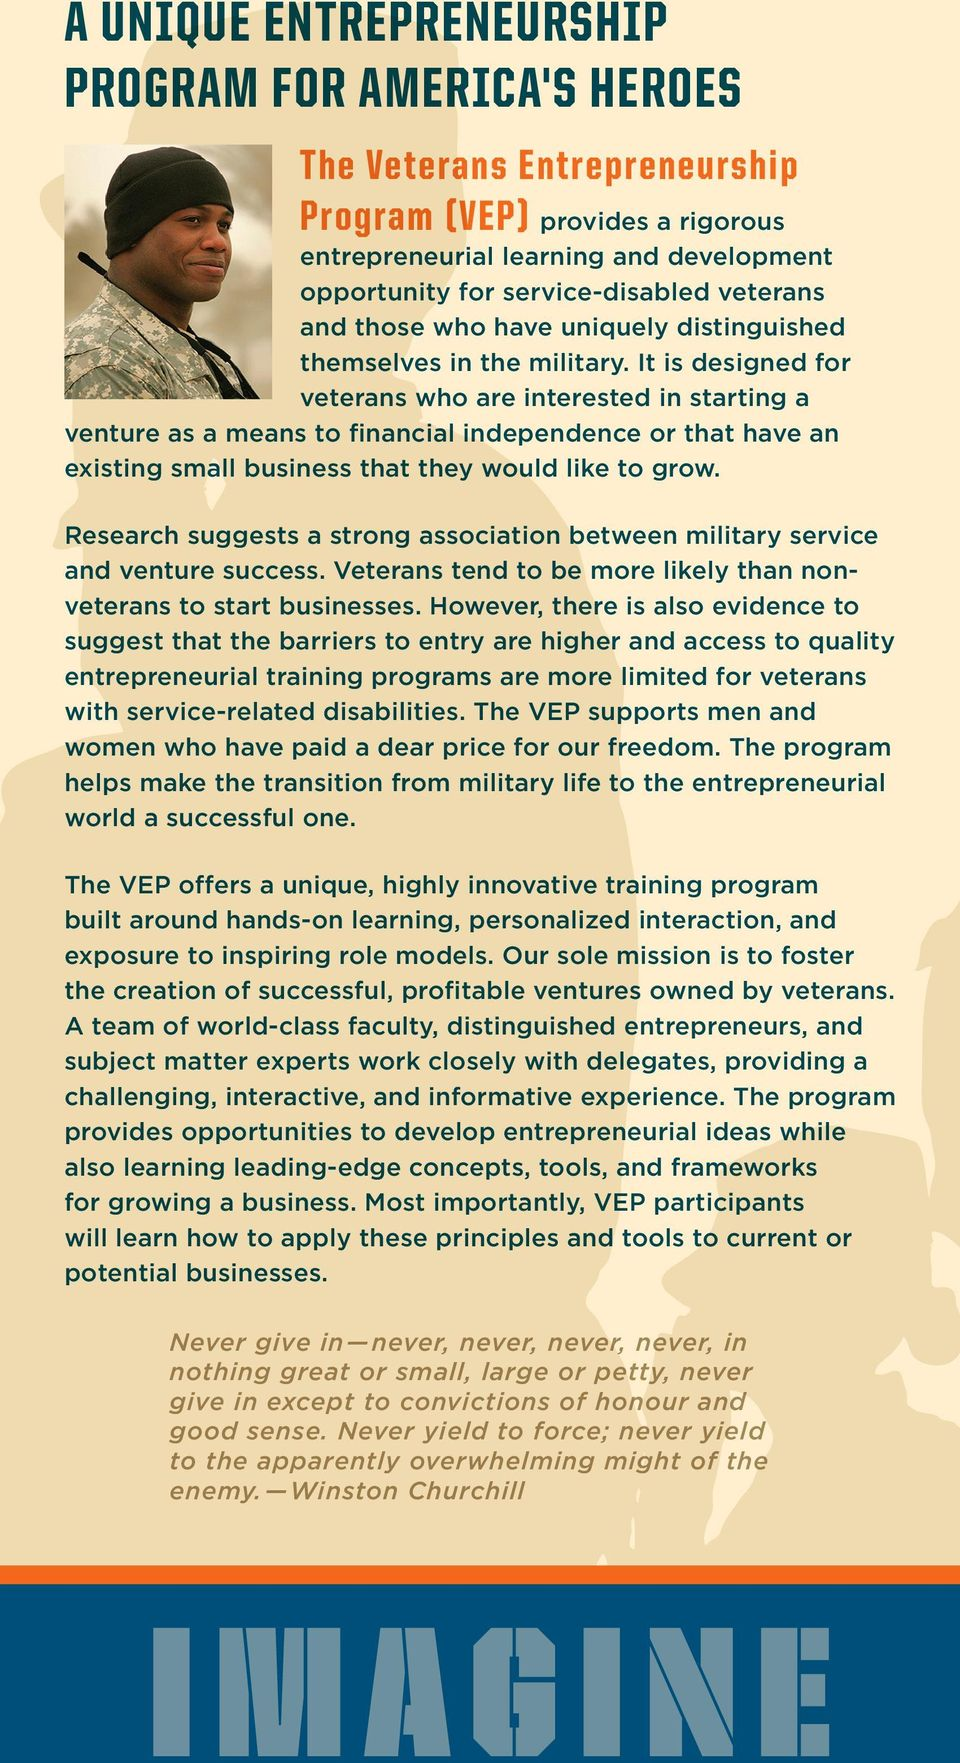 It is designed for veterans who are interested in starting a venture as a means to financial independence or that have an existing small business that they would like to grow.